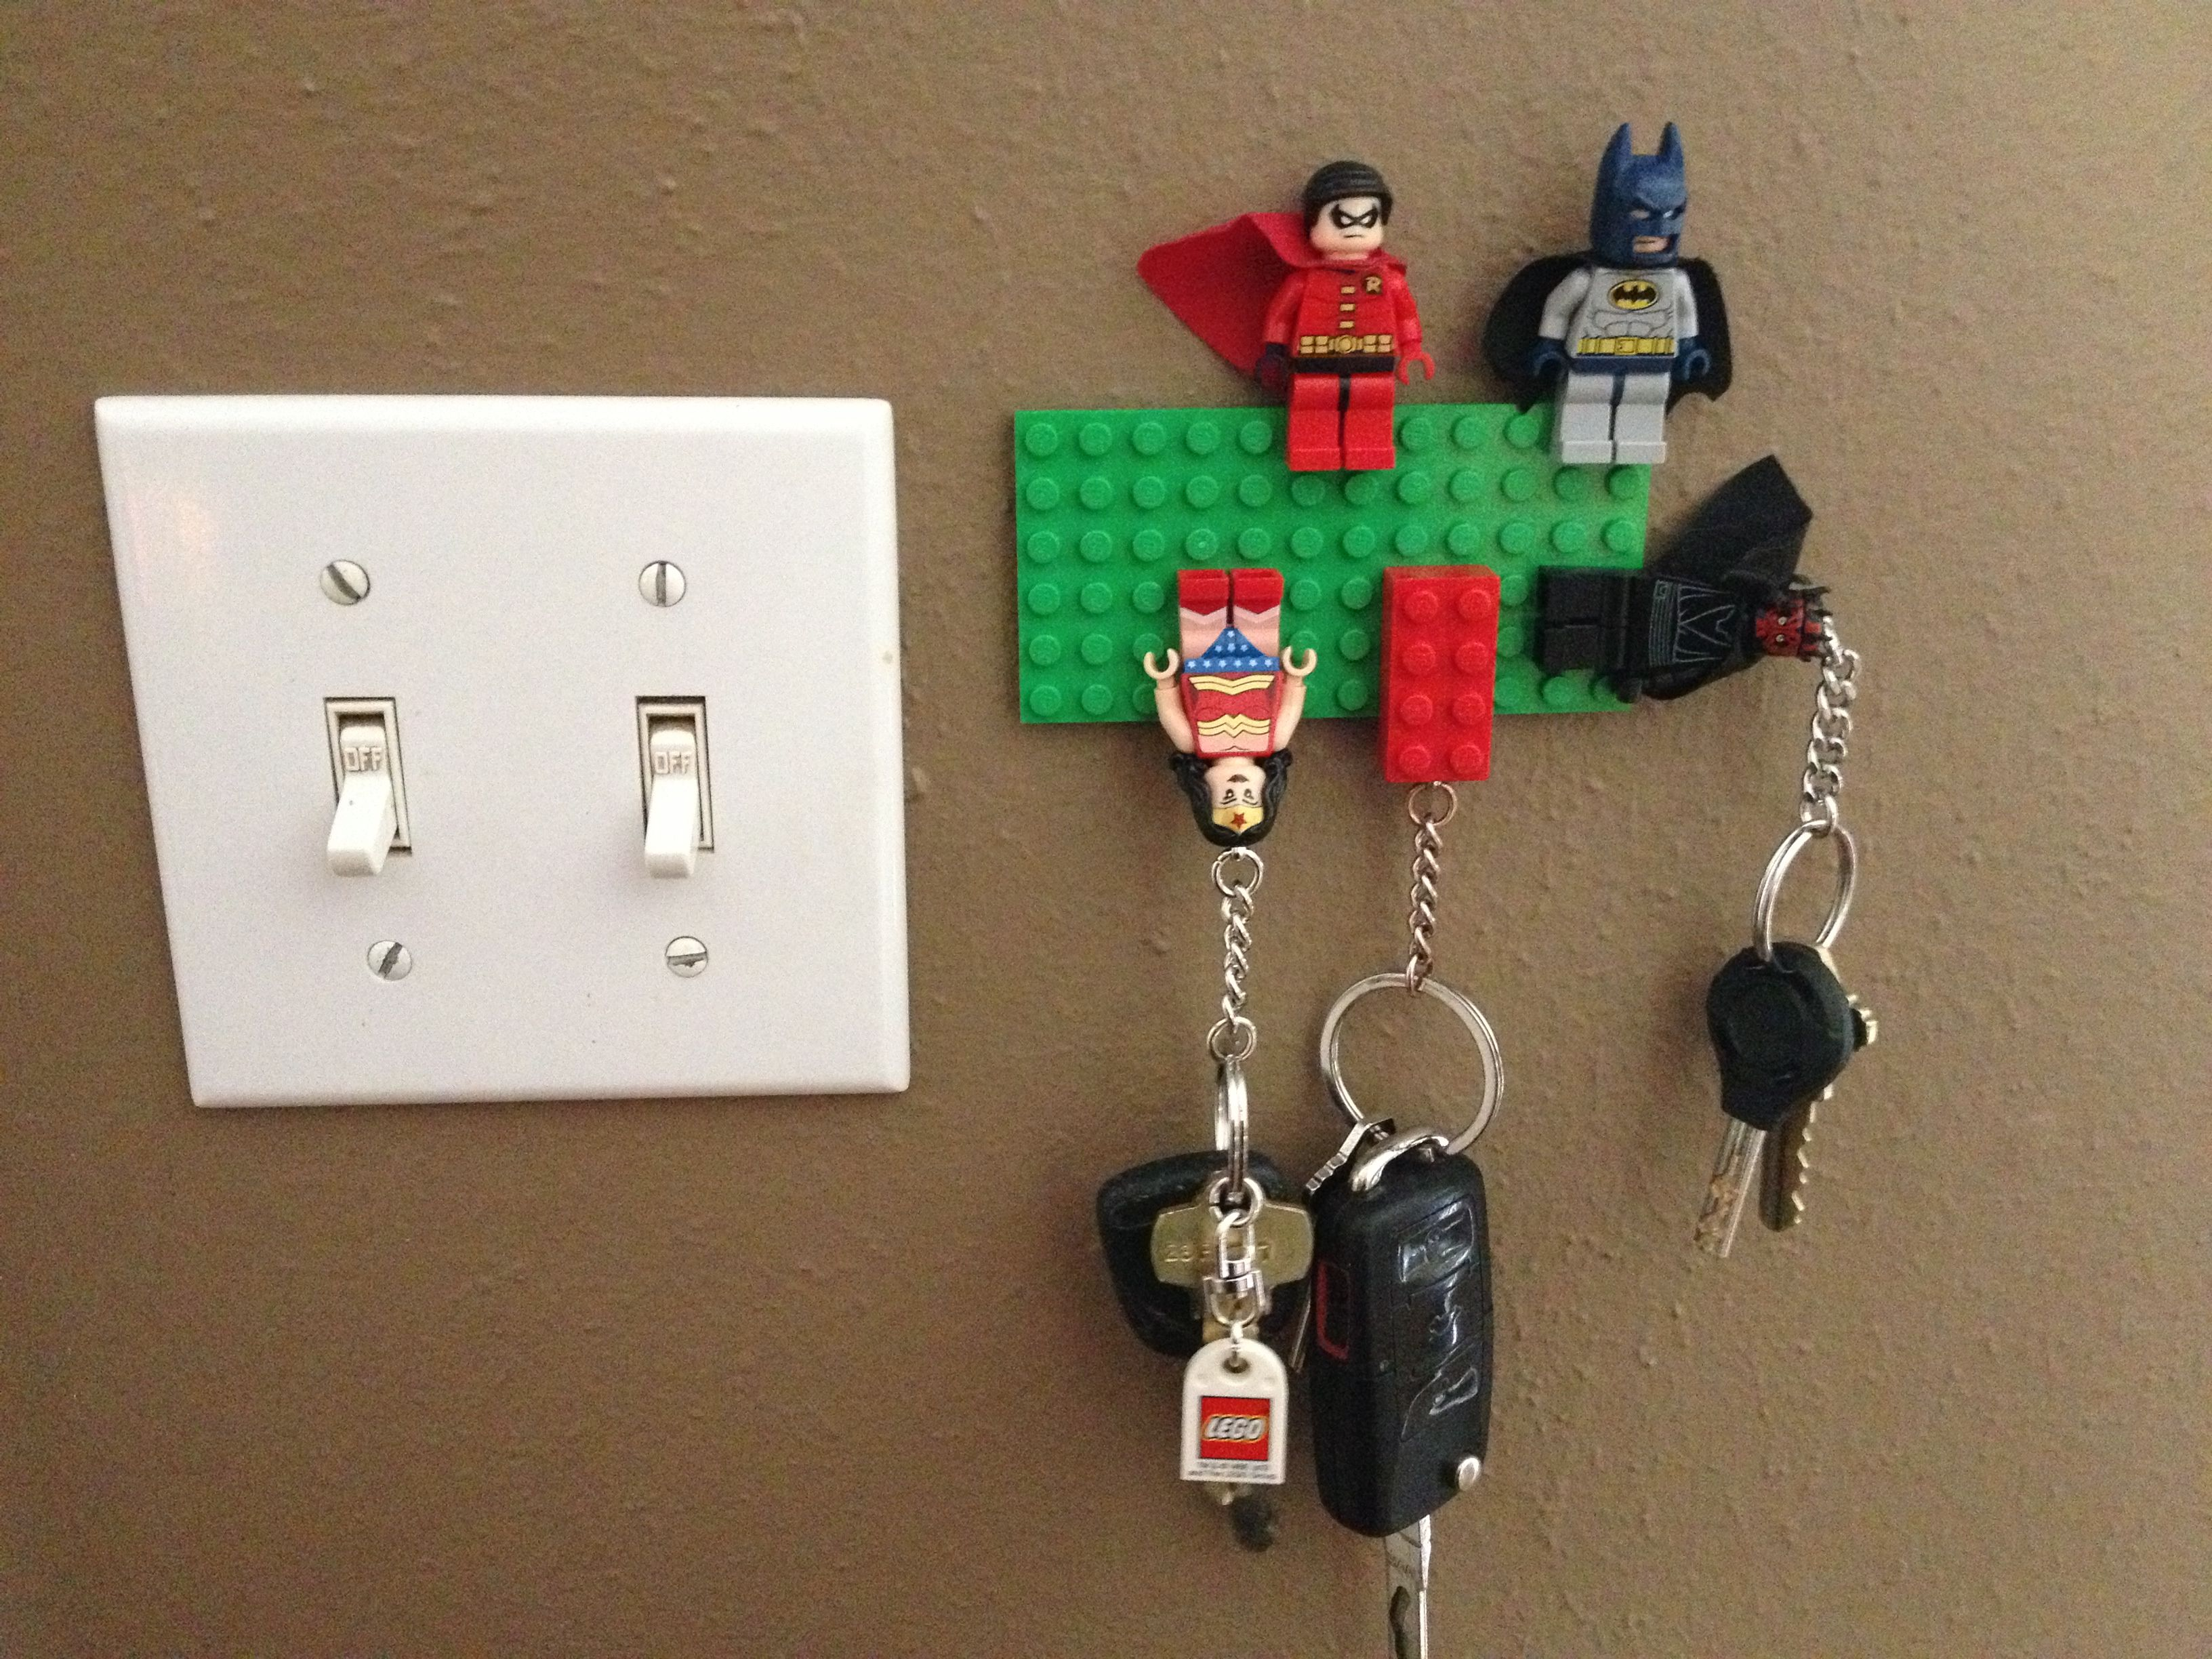 lego keychain board - my crafty brother made this! | for the